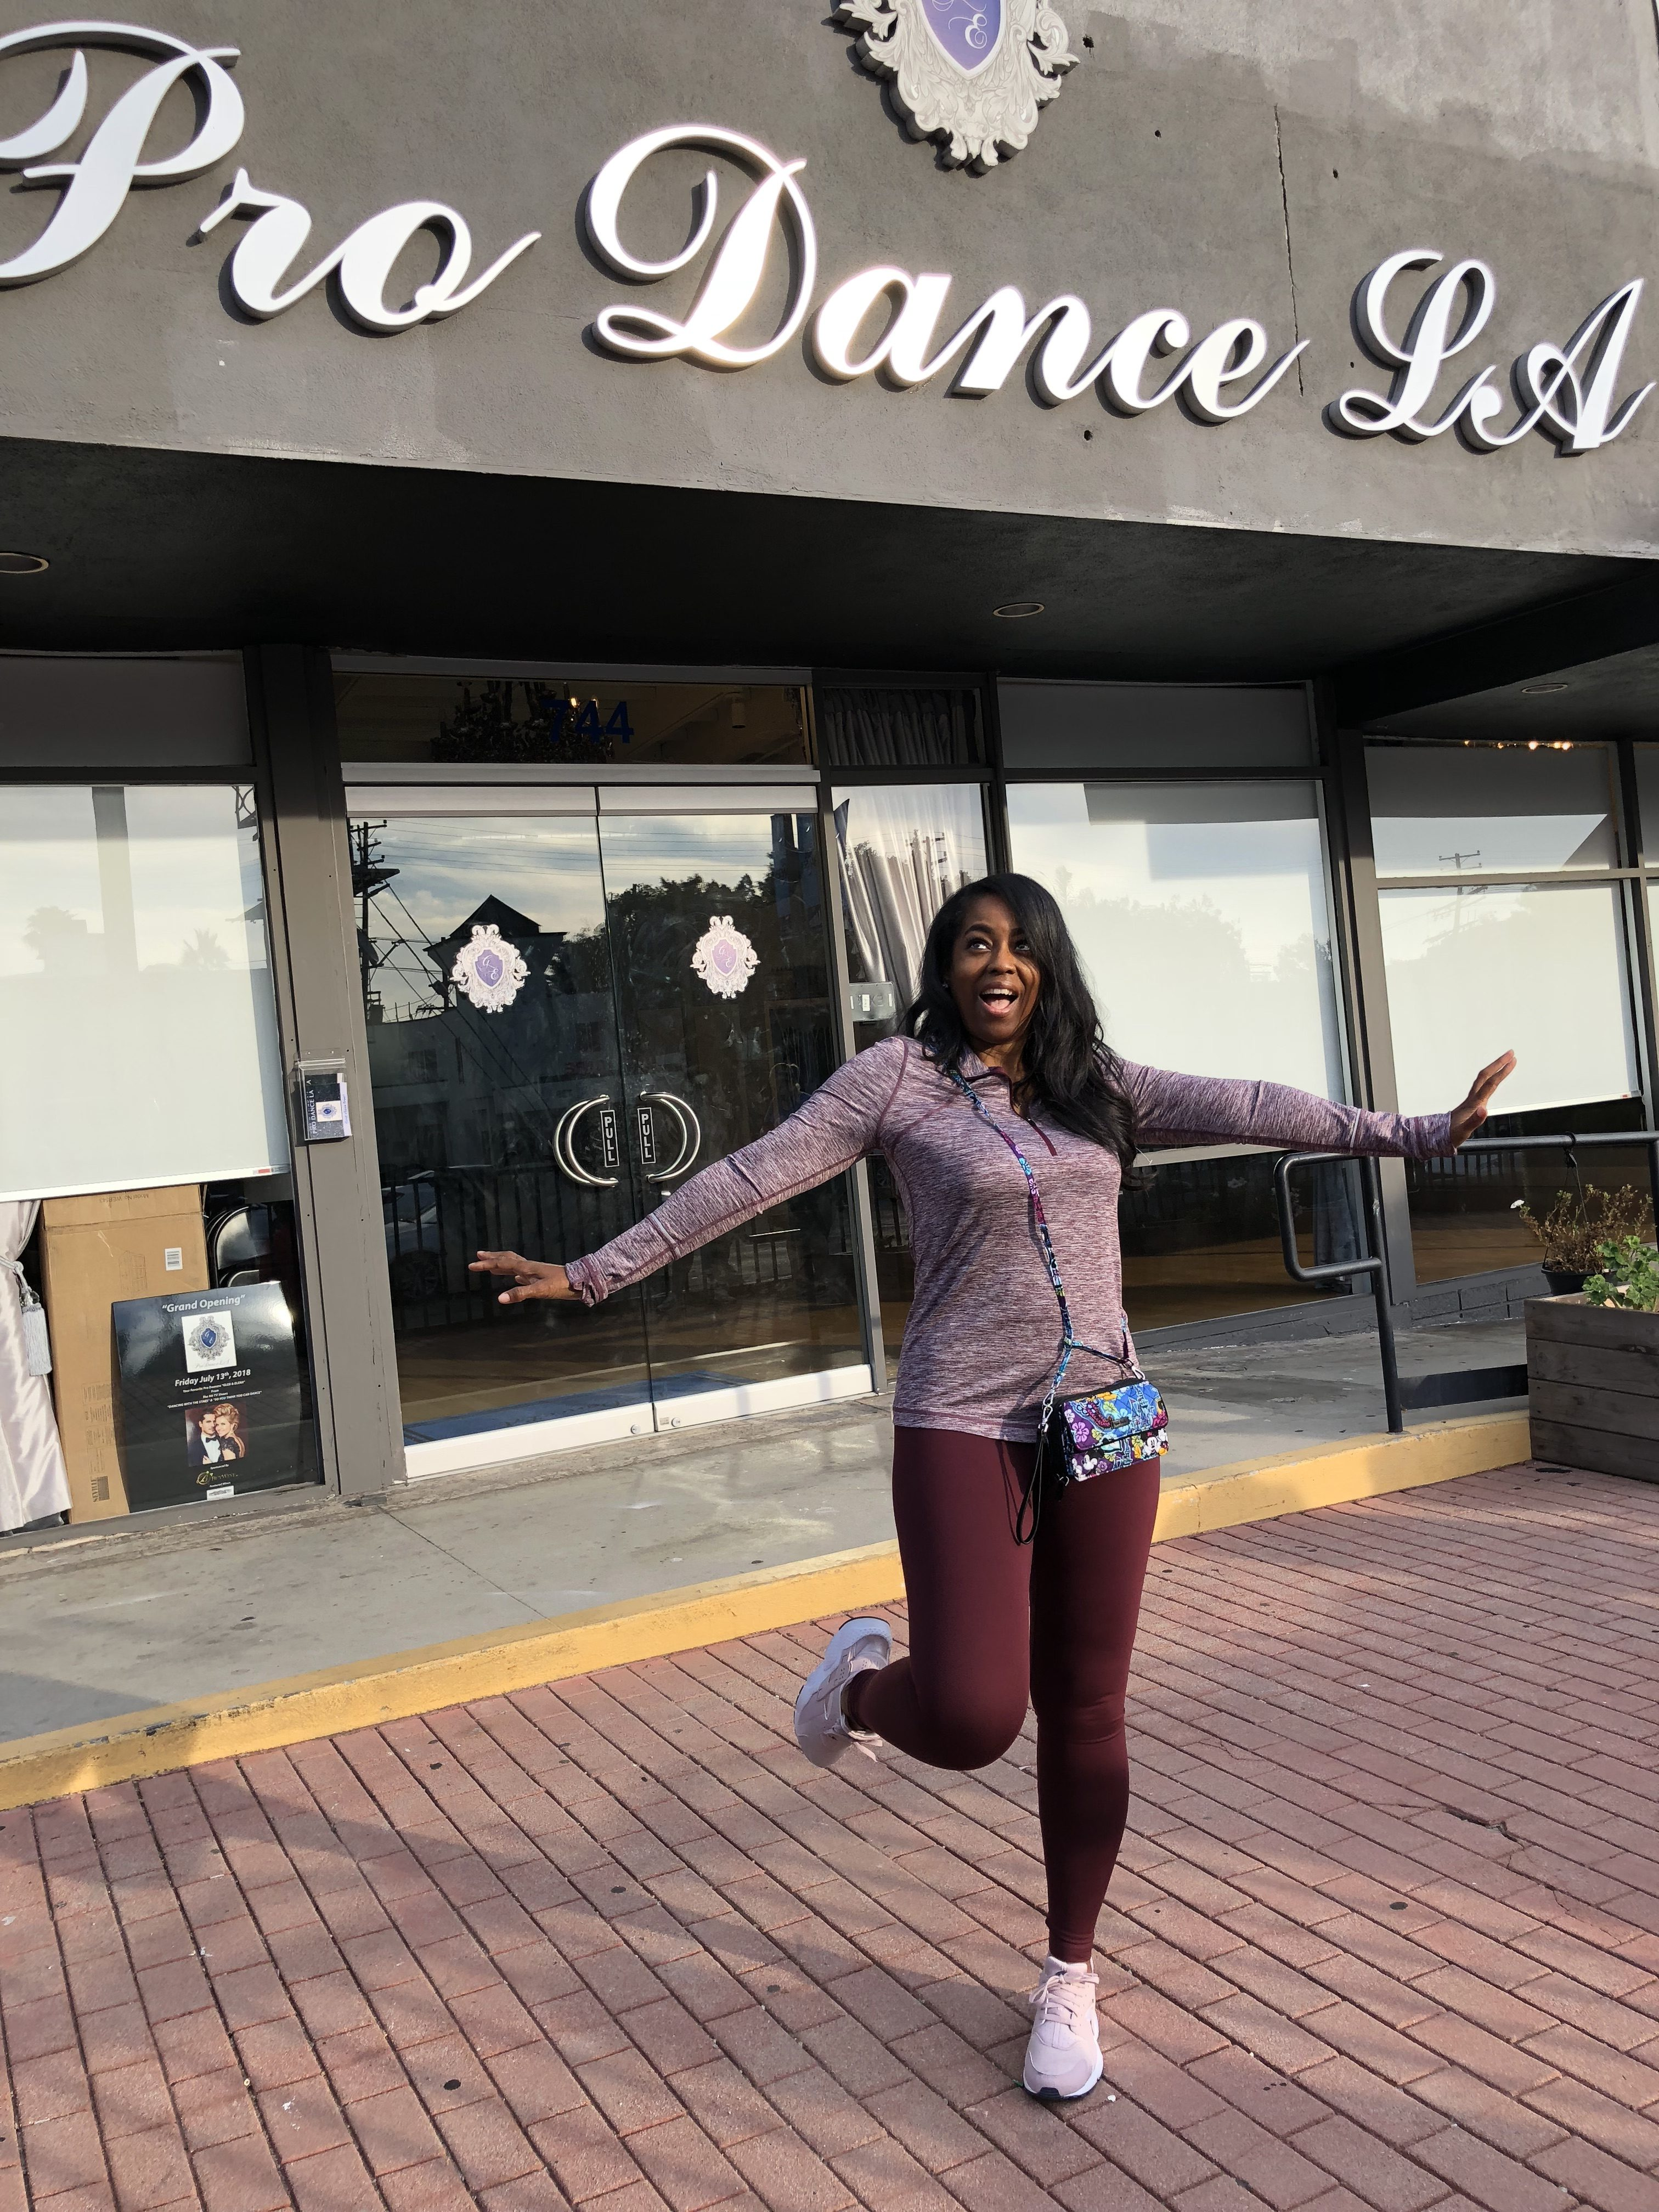 My Nutcracker Dance Lesson Experience With Dancing With The Stars' Pros